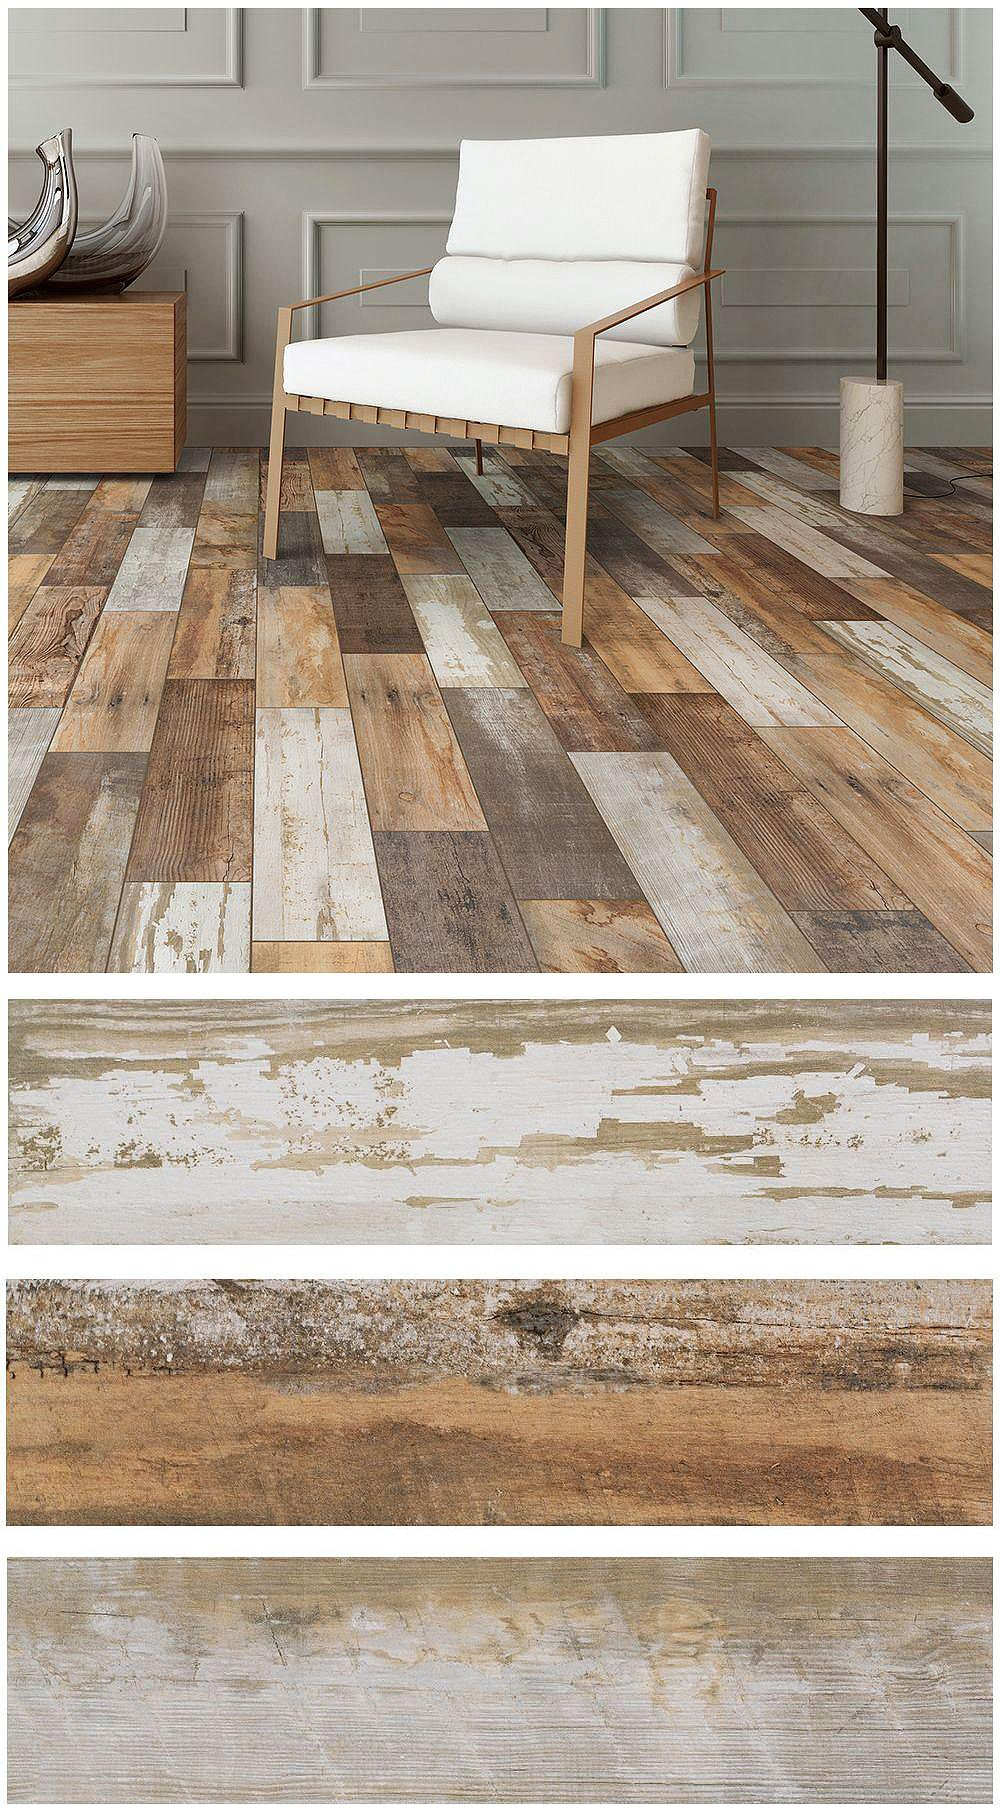 Montagna Vintage Chic Porcelain Tile Is Designed To Convey The Look Of Painted Wood That Has Been Weathered And Reclaimed In A Rich Blend Shades